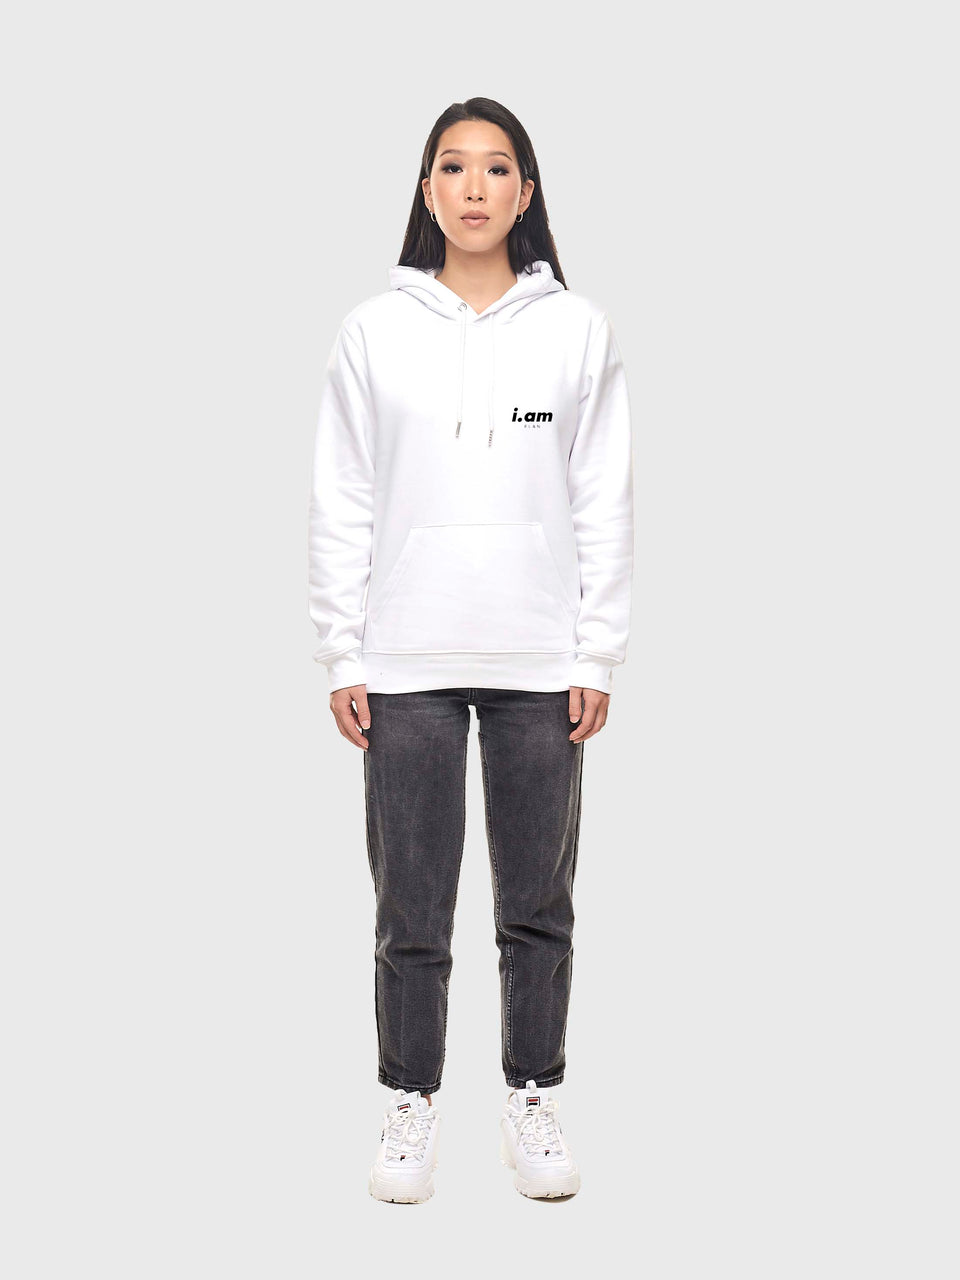 Making It - White - Unisex pull over hoodie